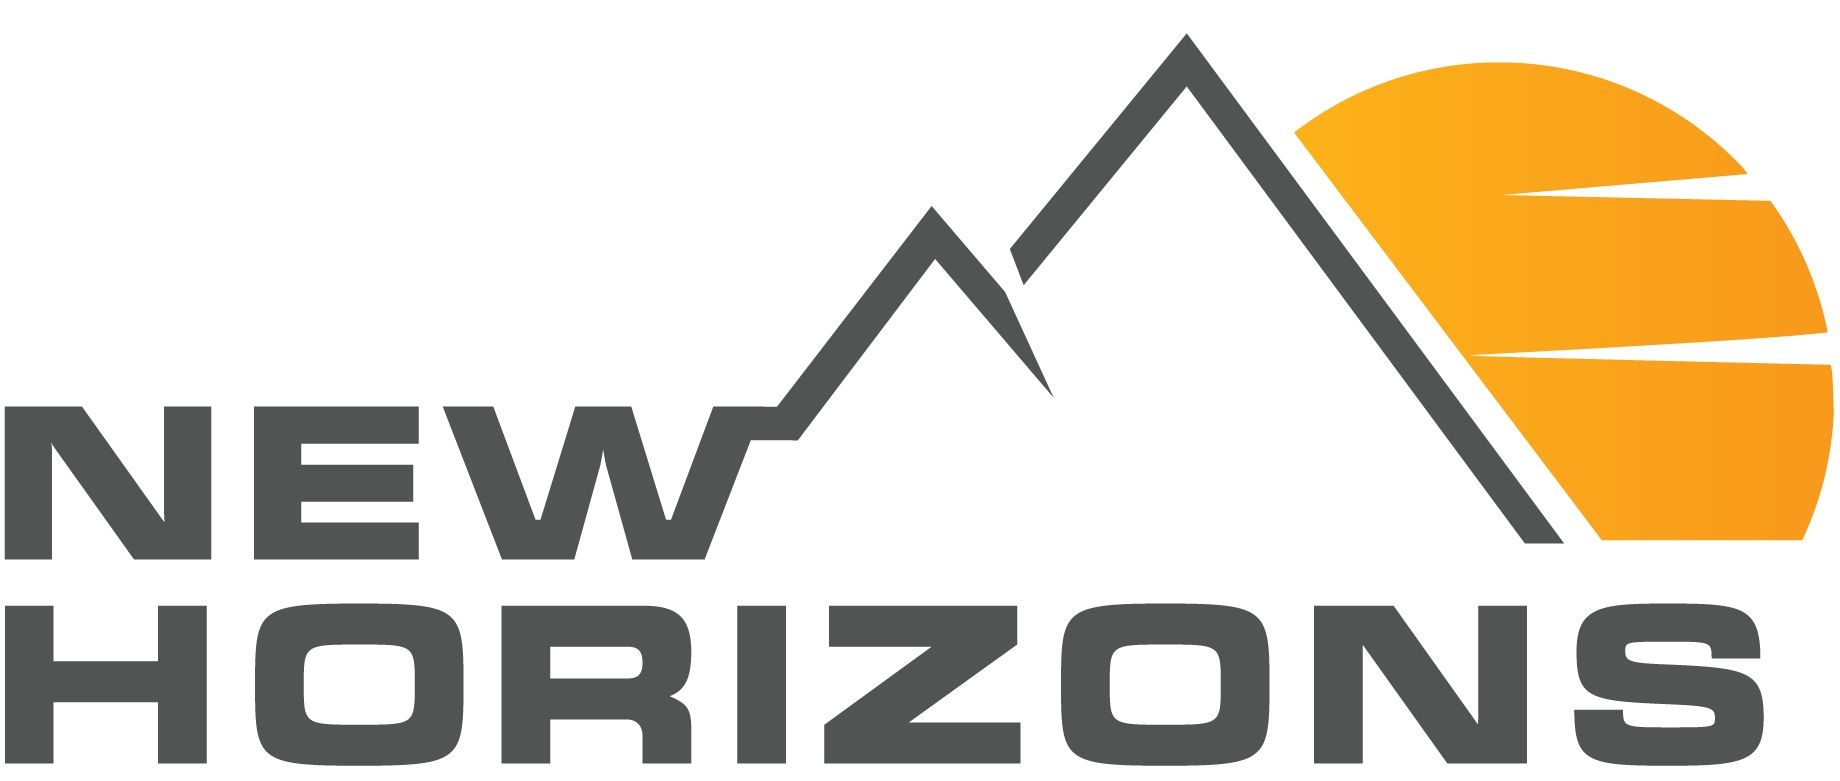 New Horizons New Logo 2018.png